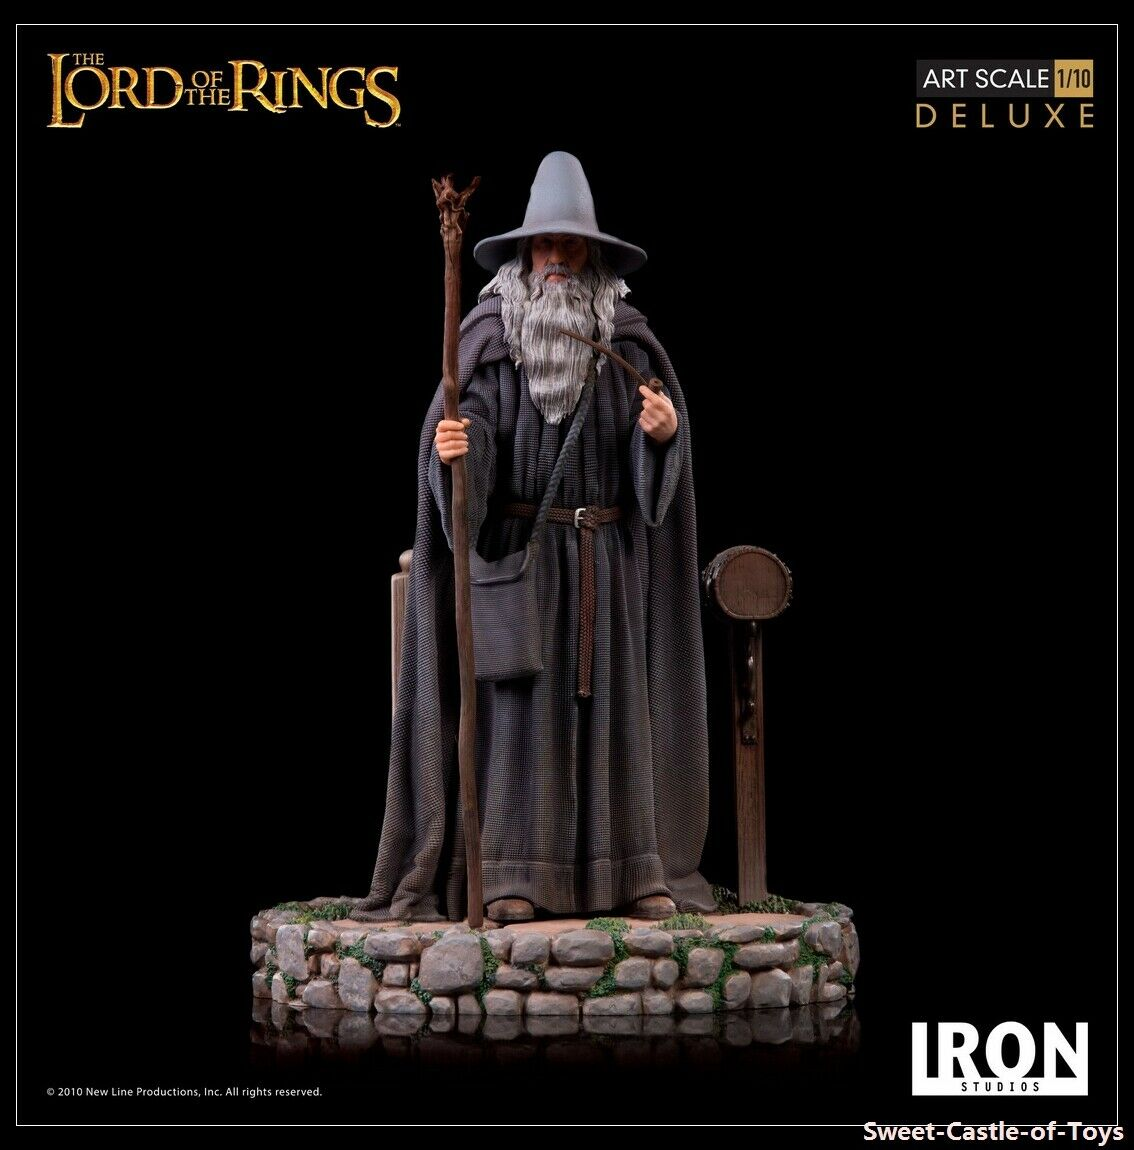 1/10 Iron Studios Lord of the Rings - Hobbits Gandalf Deluxe BDS Art Scale  on eBay thumbnail